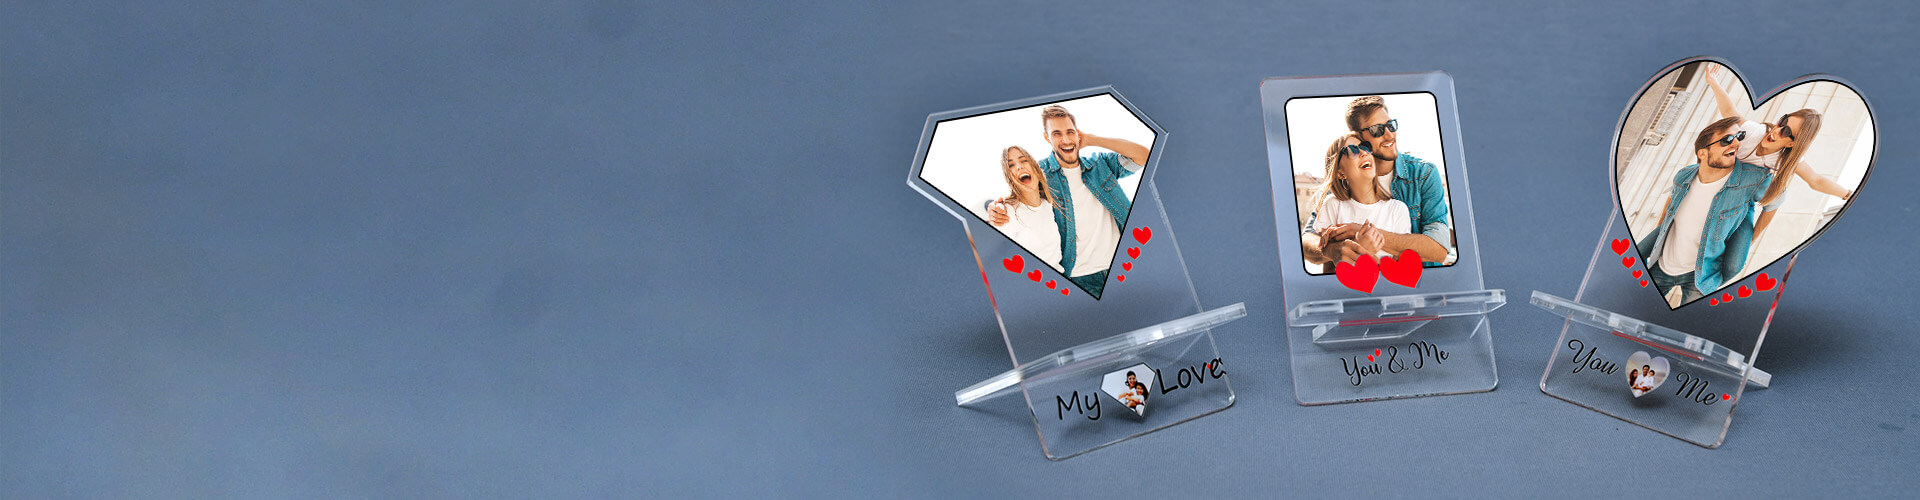 Personalised Acrylic Mobile Stand